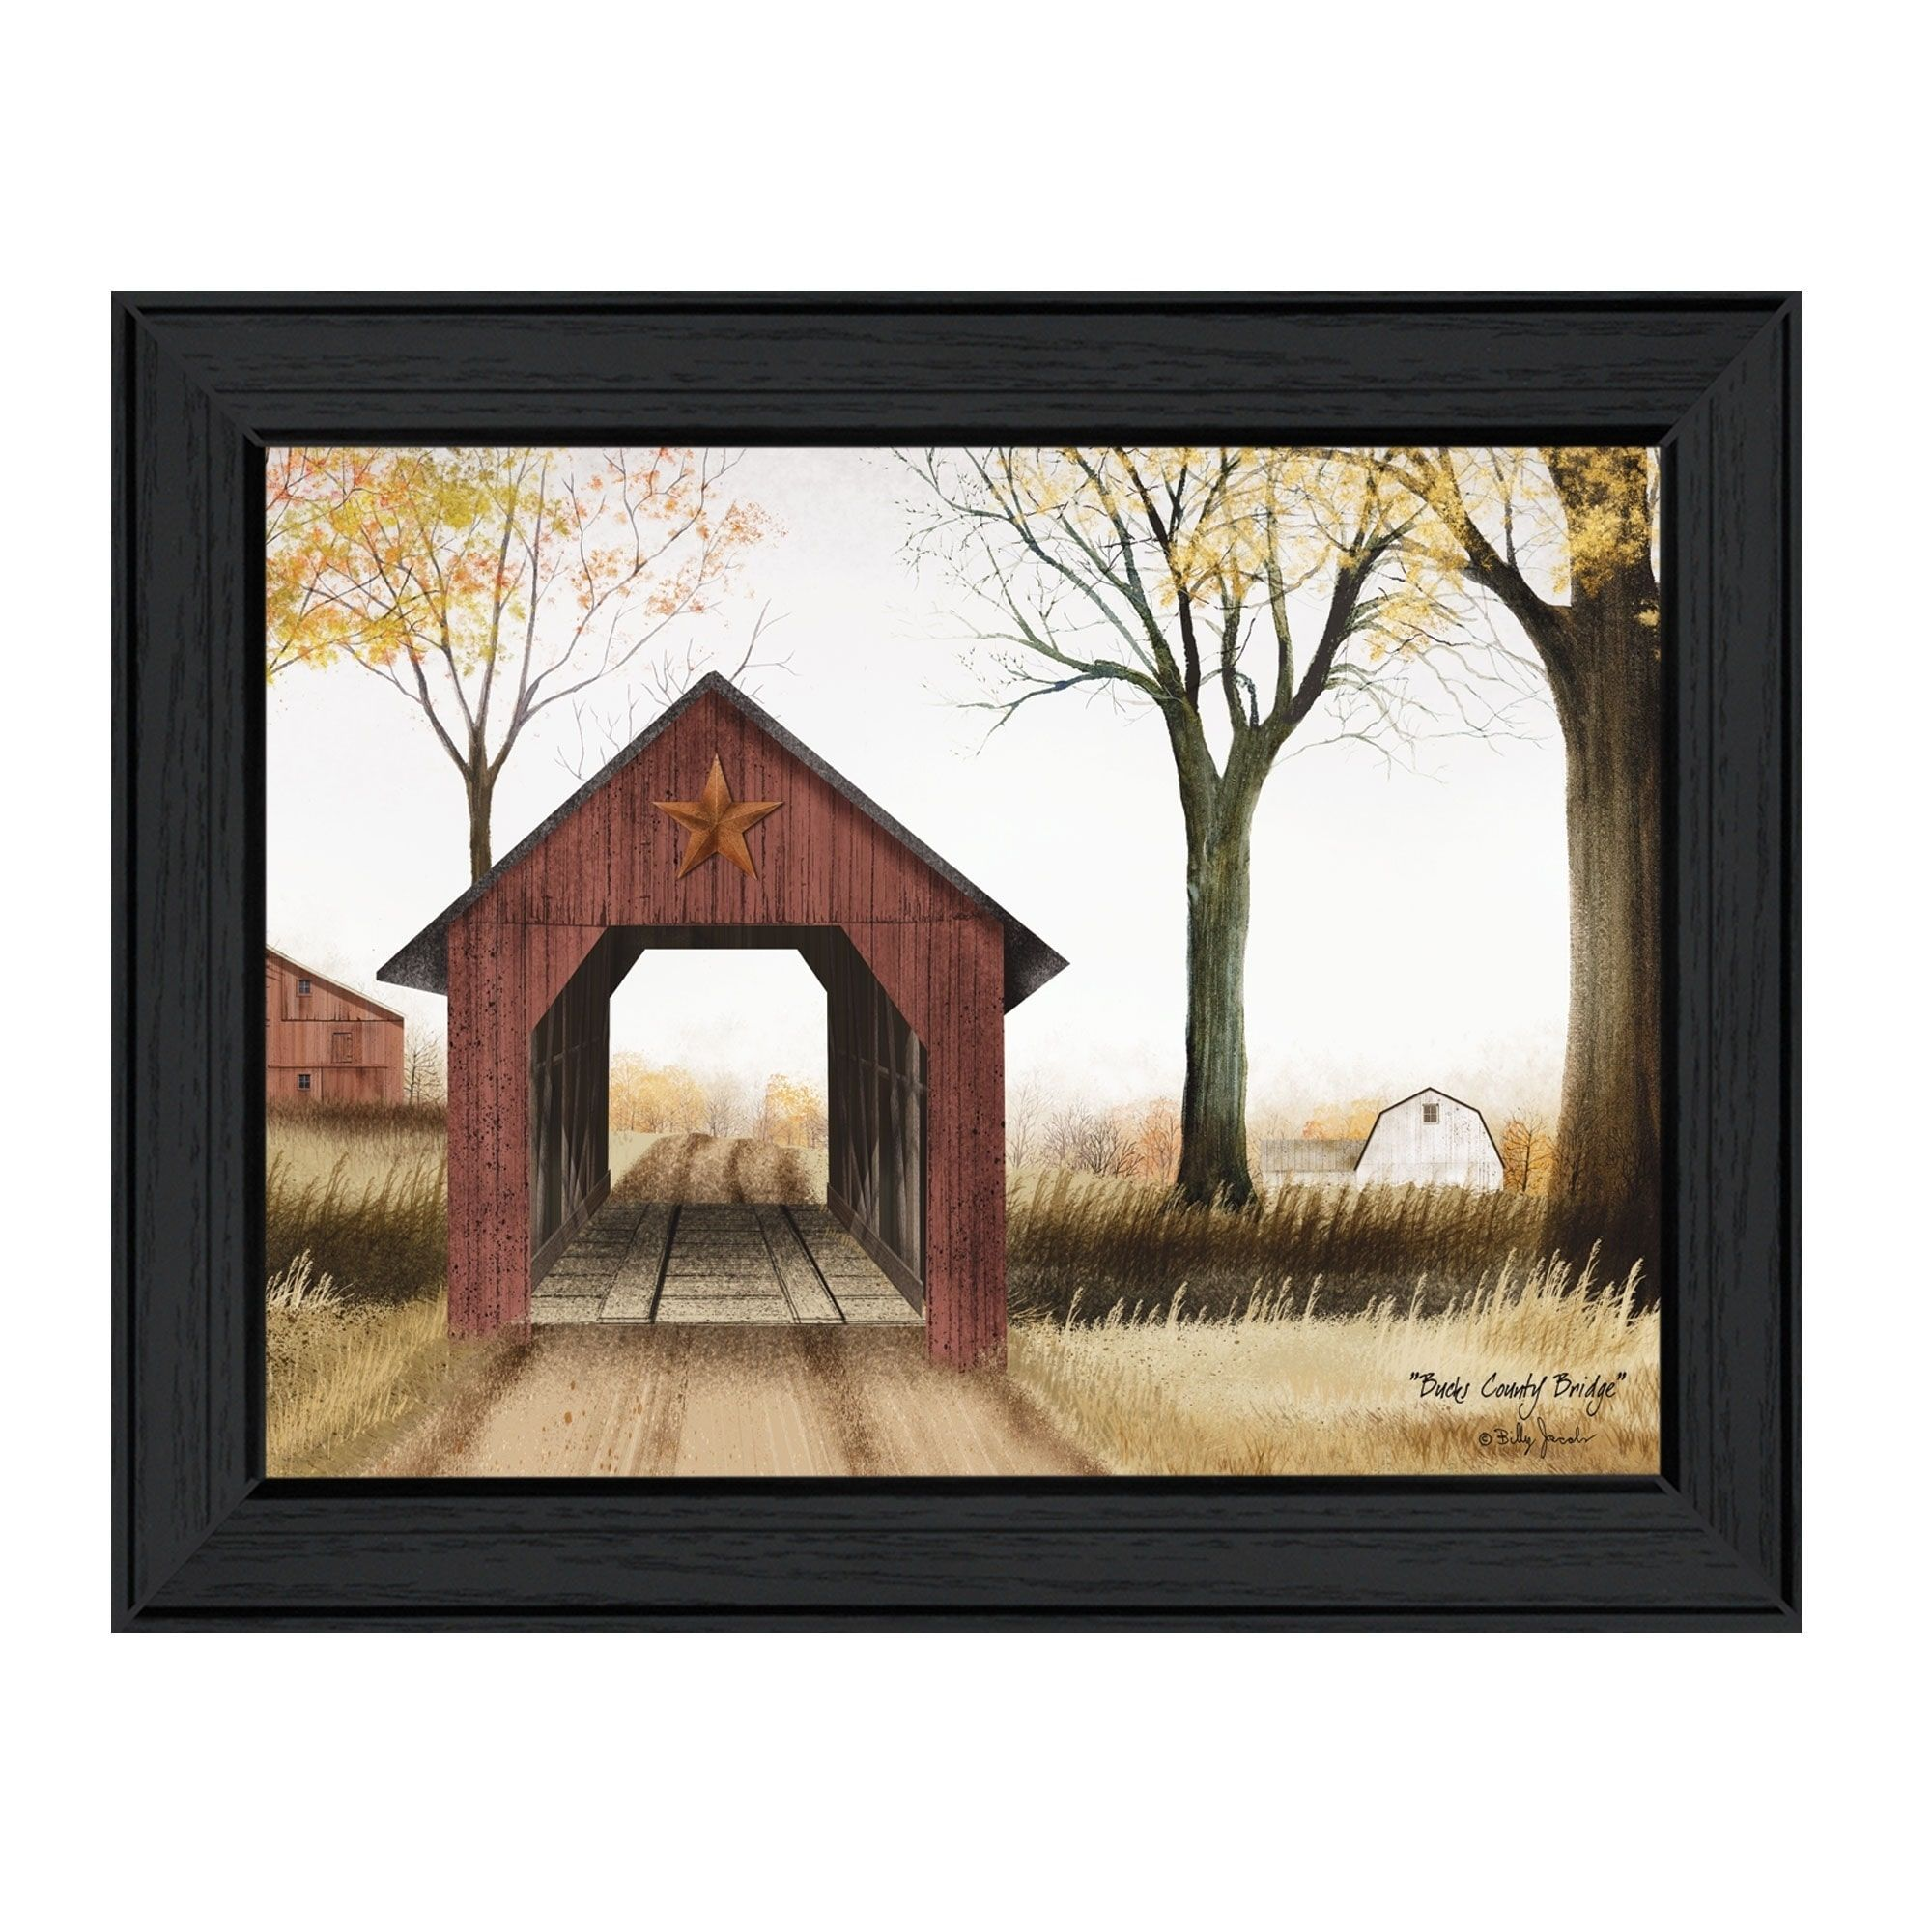 Trendy Decor 4U Bucks County Bridge By Billy Jacobs Printed